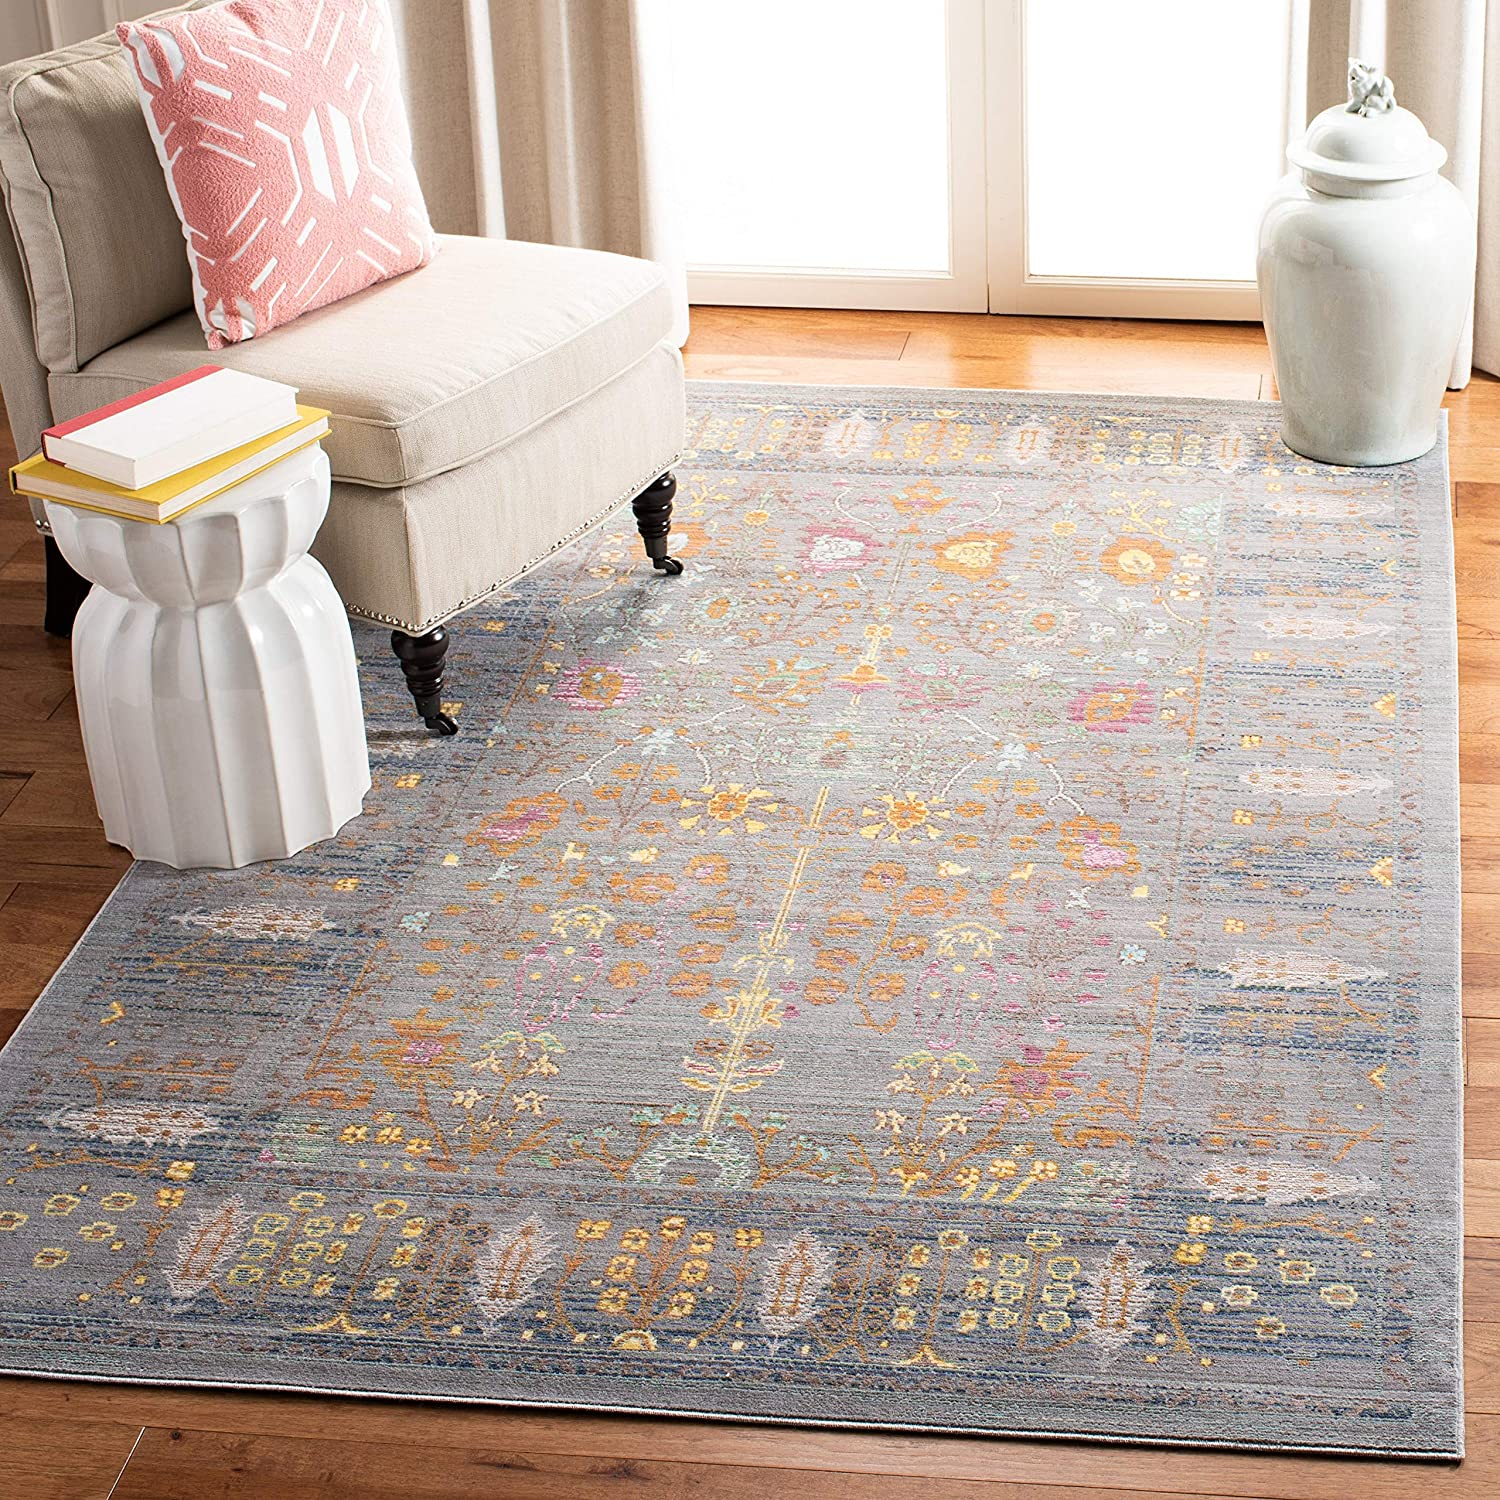 Safavieh 70% OFF Outlet Valencia Collection VAL108C Omaha Mall Boho Chic Distressed R Area